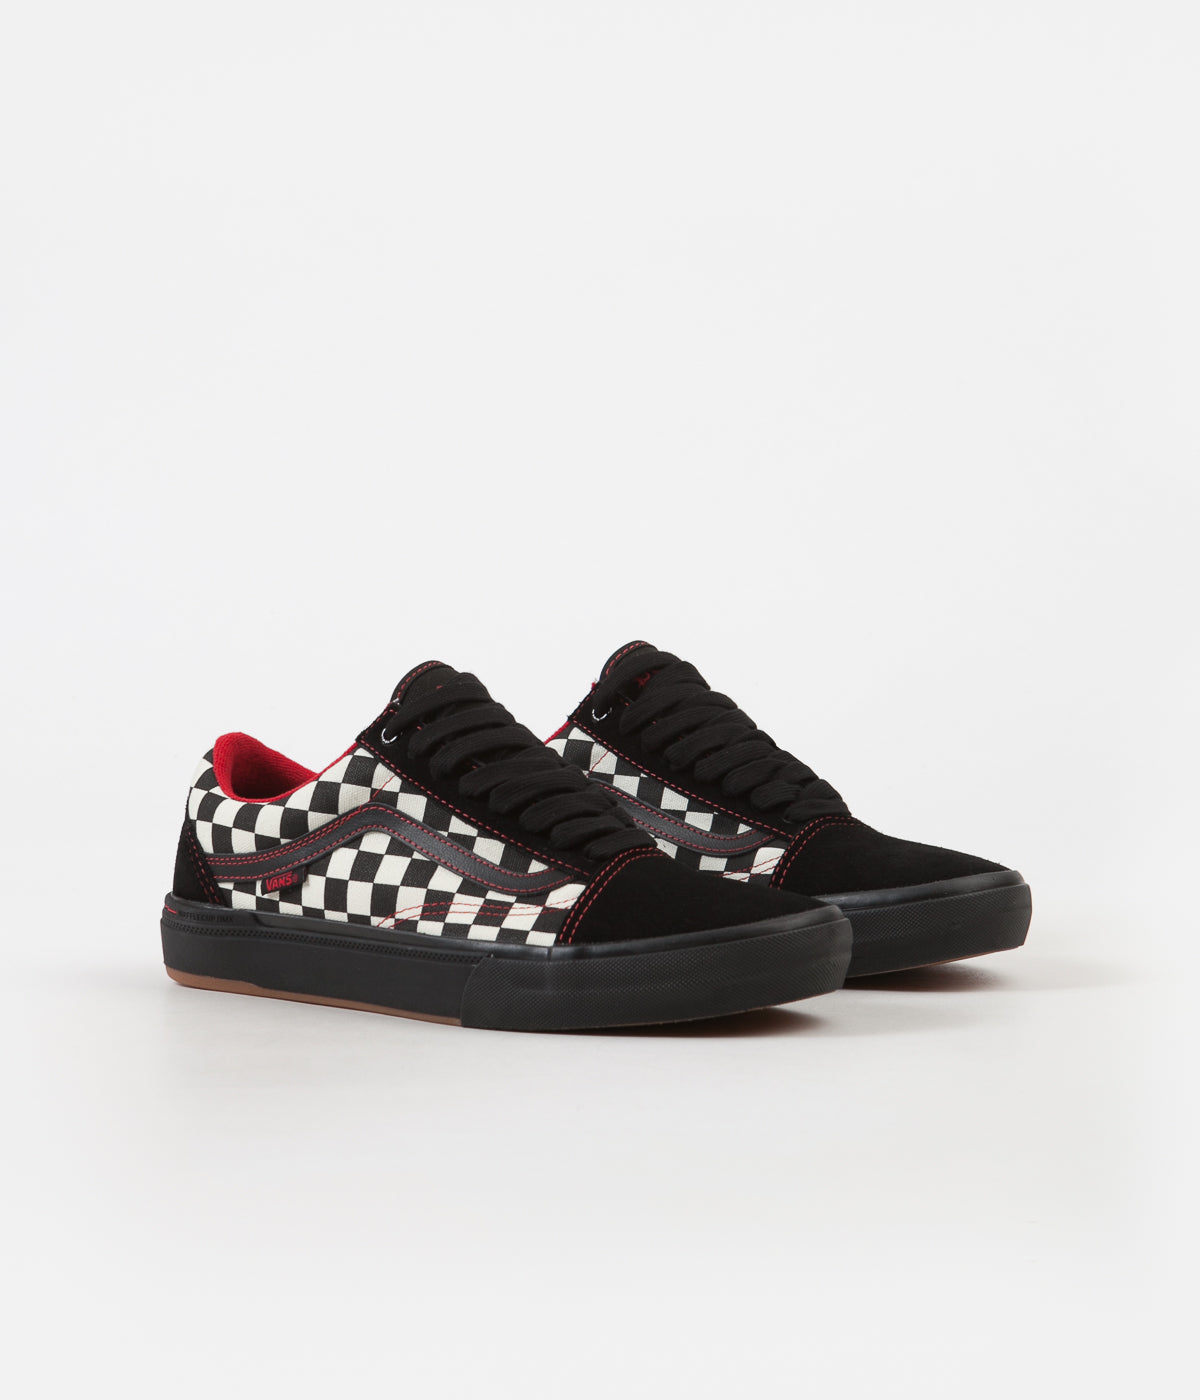 70f3f962b8b ... Vans Old Skool Pro BMX Shoes - (Kevin Peraza) Black   Checkerboard ...